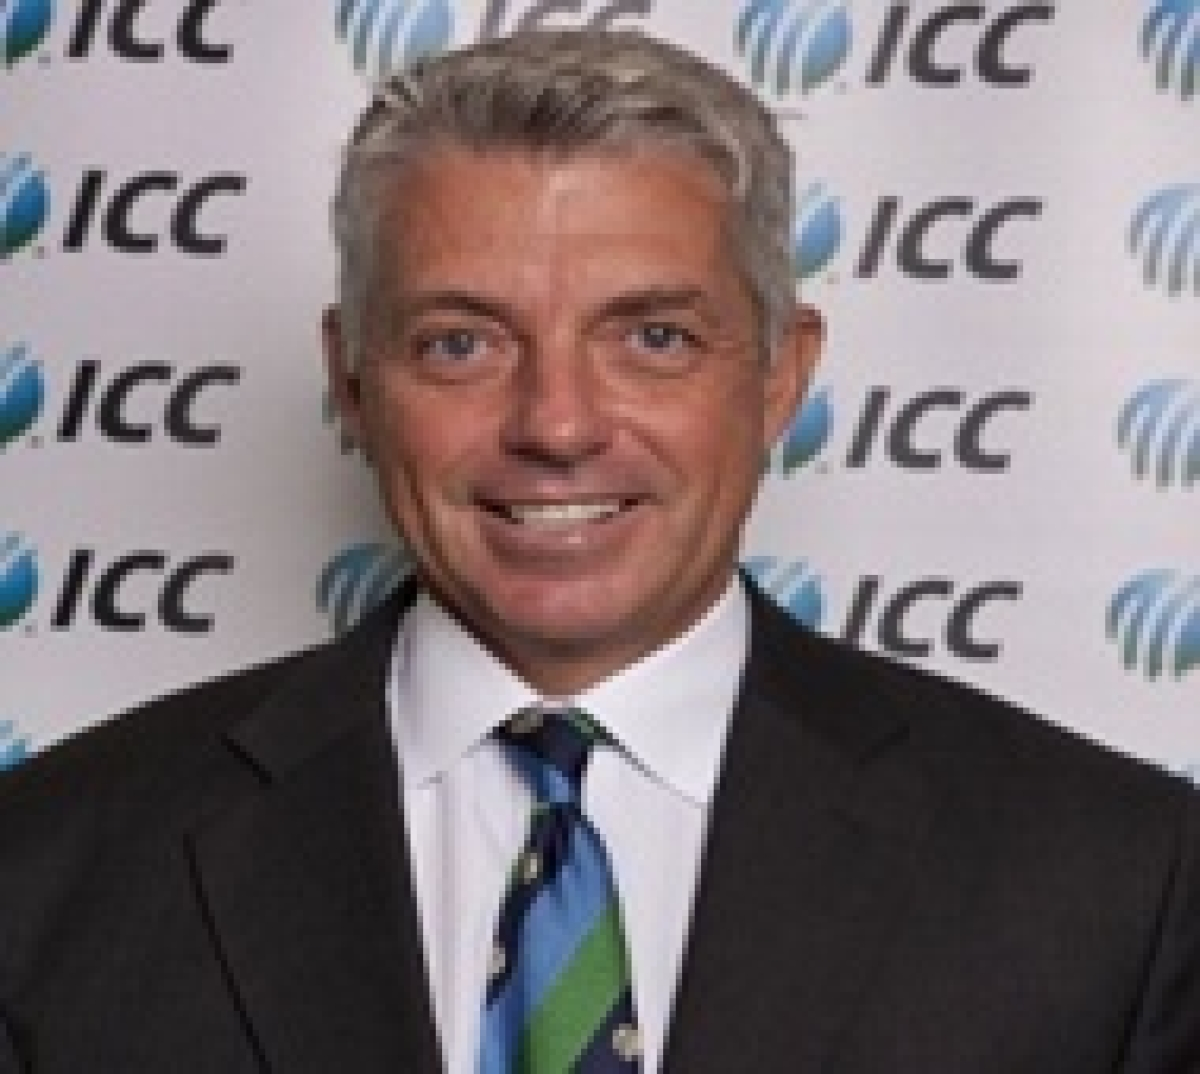 We want all 3 formats to co-exist and flourish: ICC